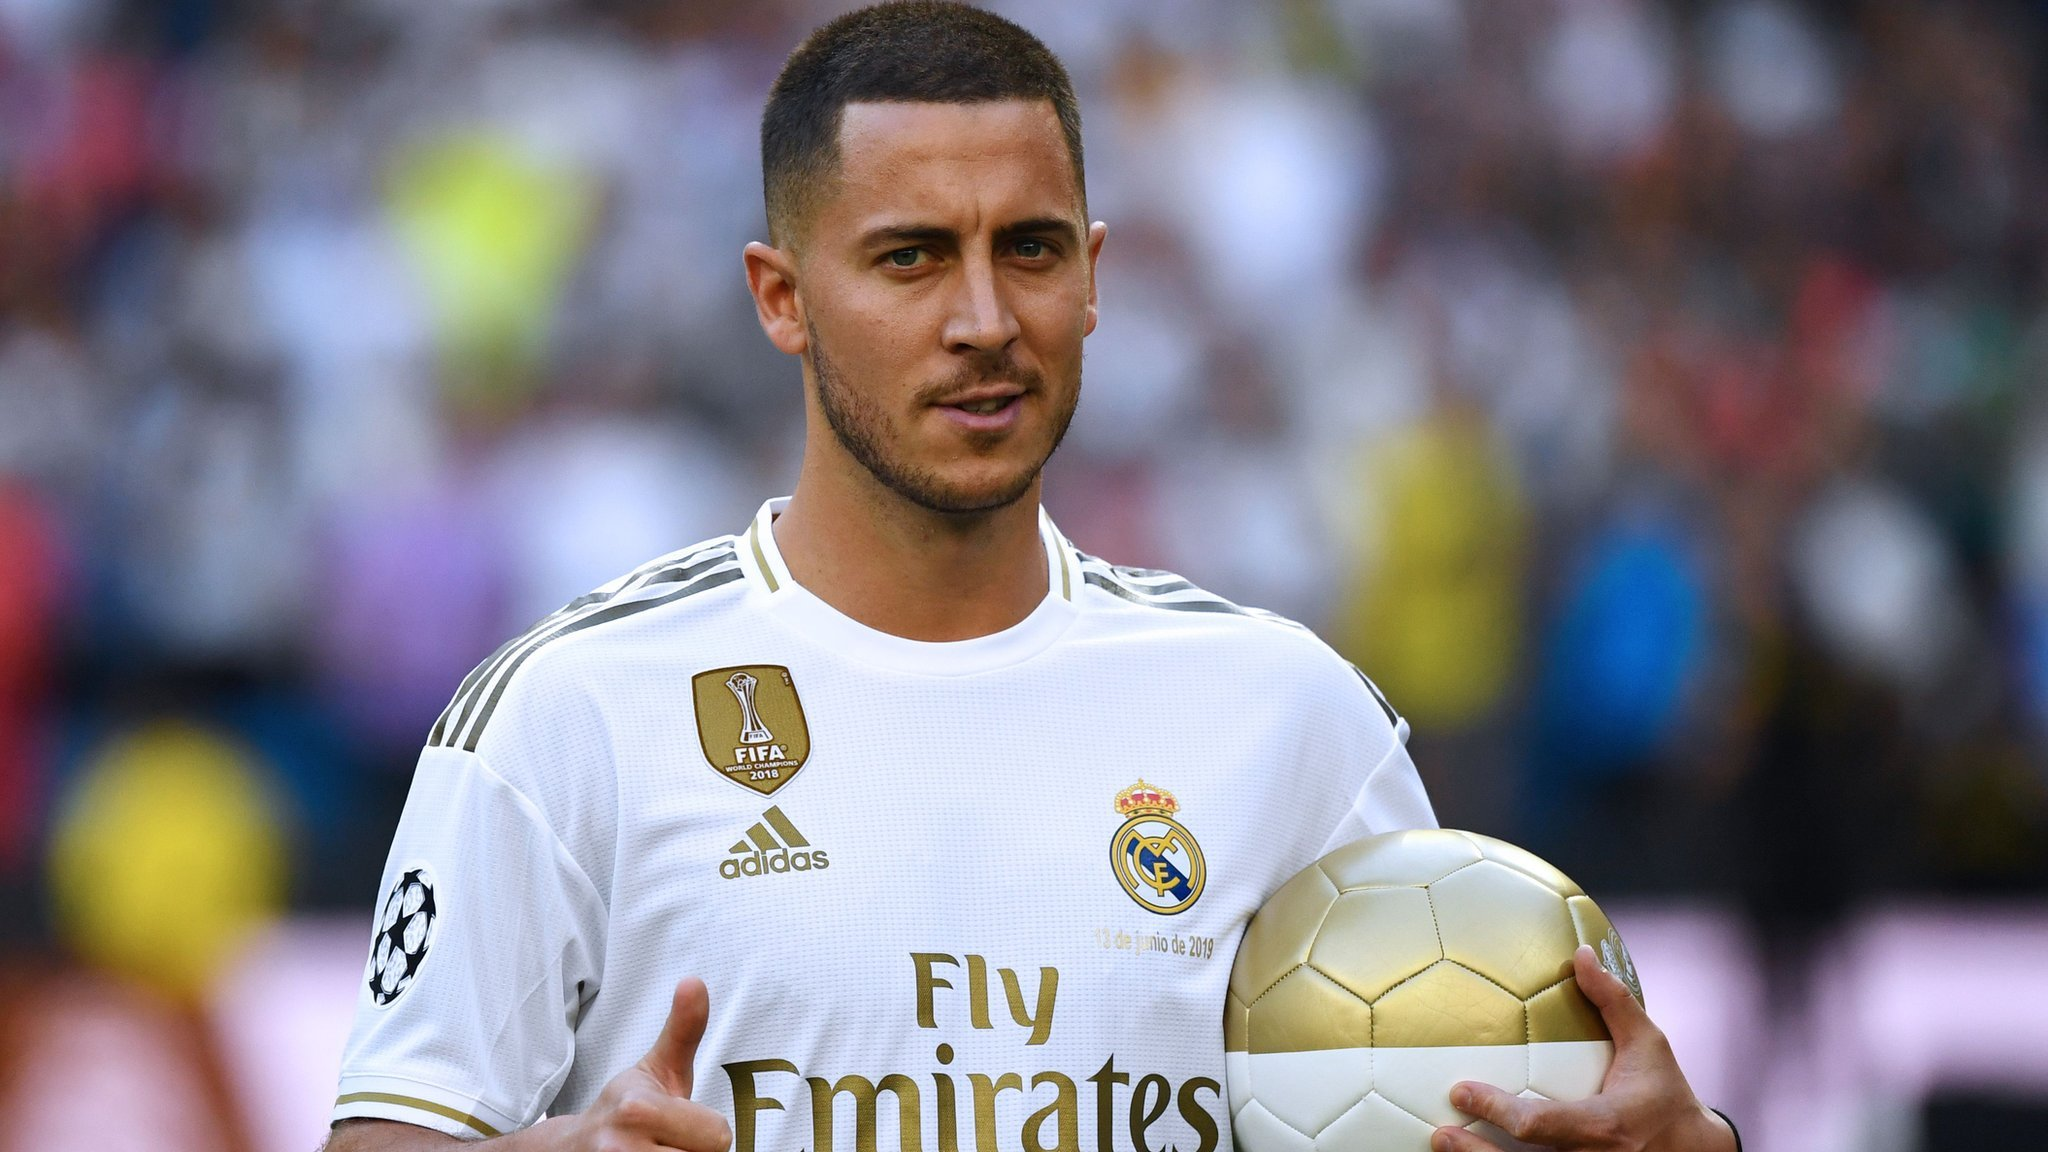 Real Madrid: Eden Hazard and other arrivals point to new Galacticos era